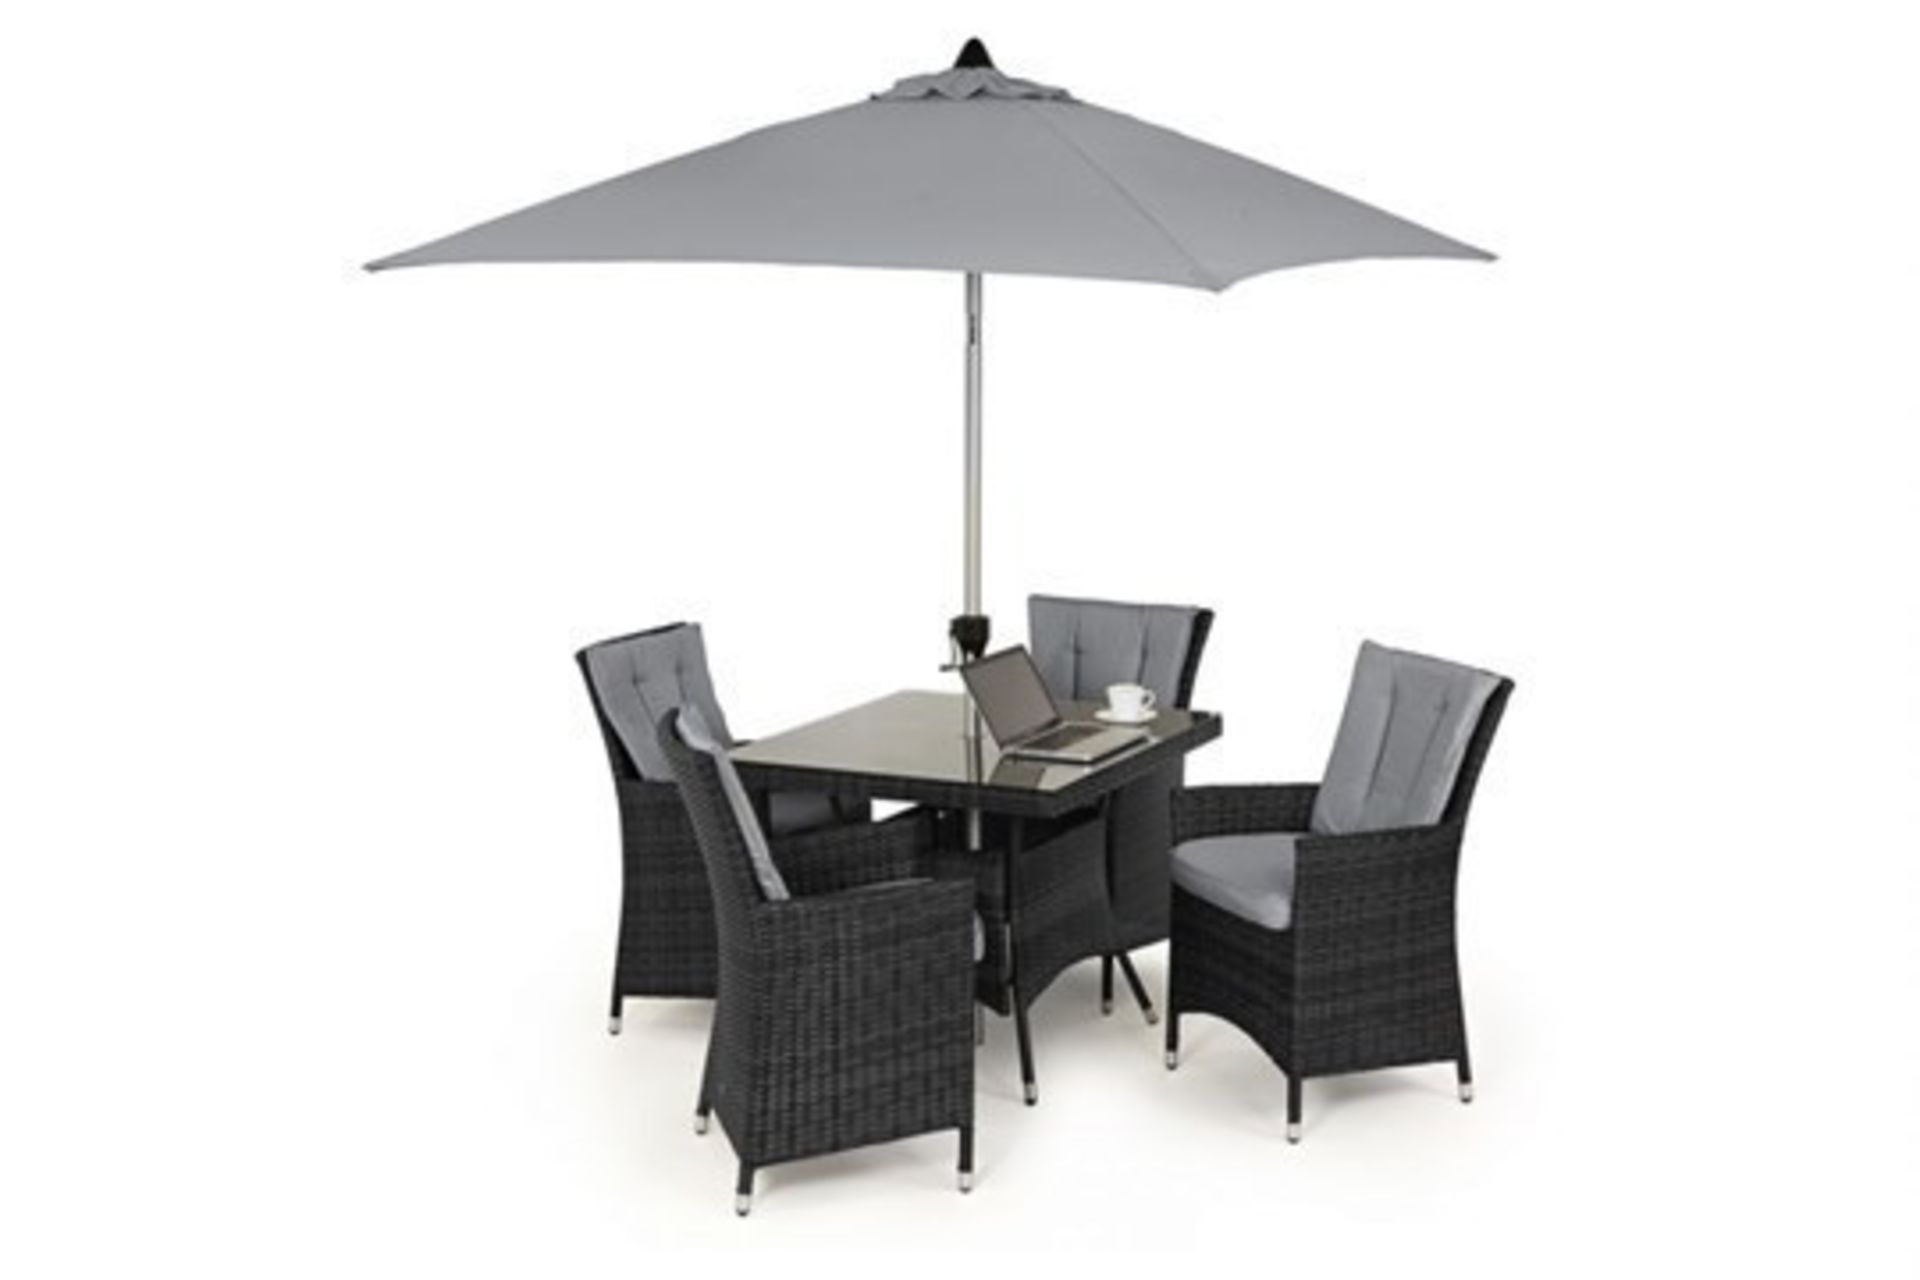 Lot 29 - (Reserve Met) Rattan LA 4 Seat Square Outdoor Dining Set With Parasol (Grey) *BRAND NEW*